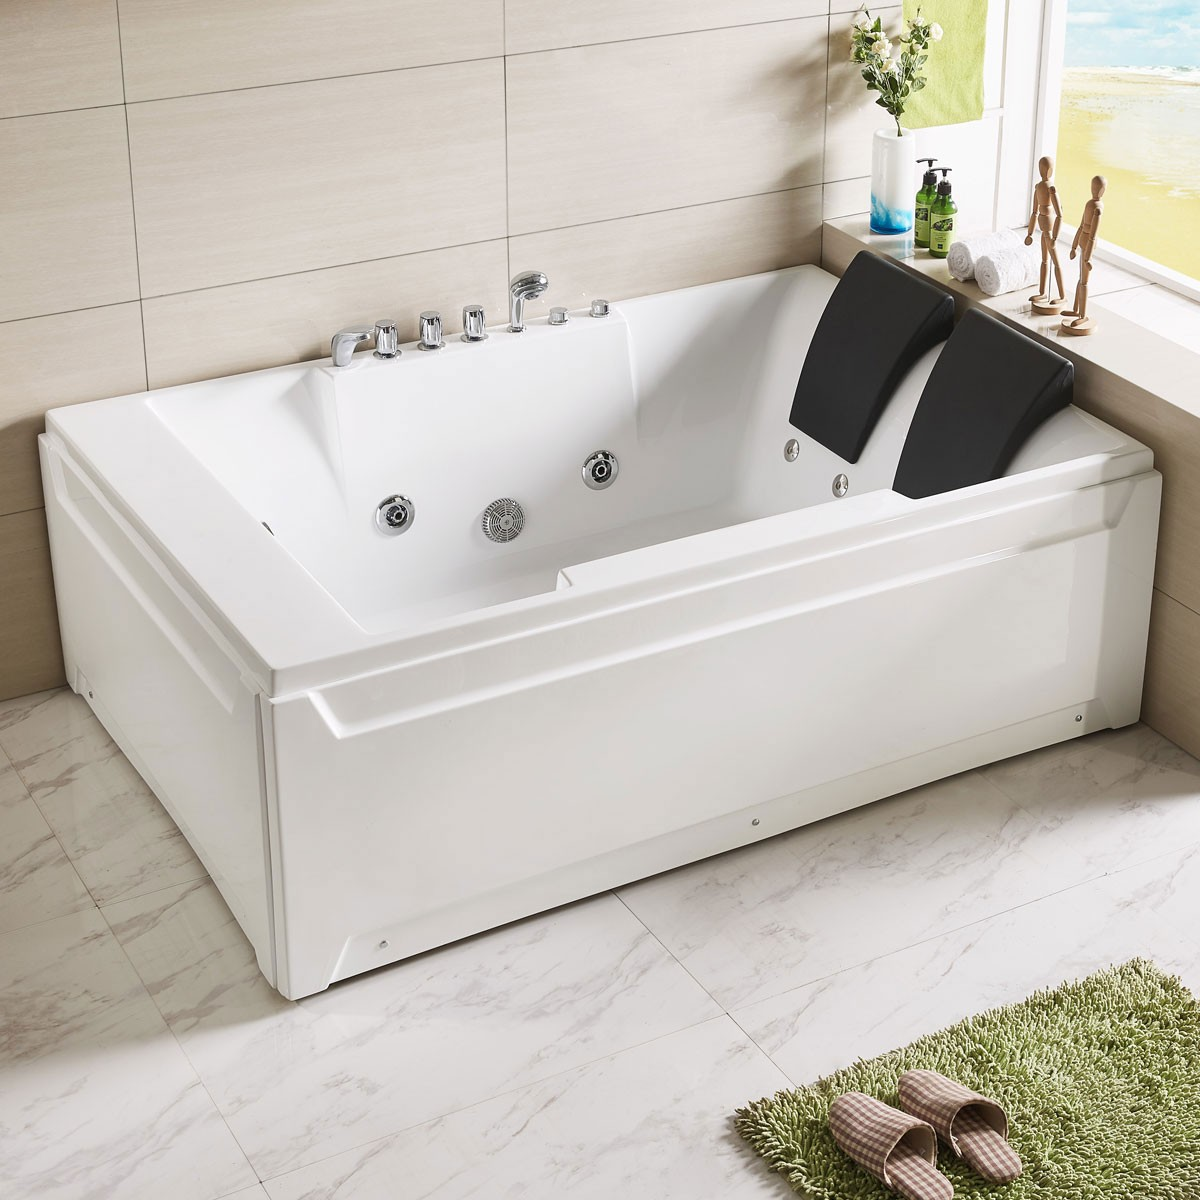 72 x 48 In Whirlpool Tub with Double Pillow (DK-Q367) | Decoraport ...